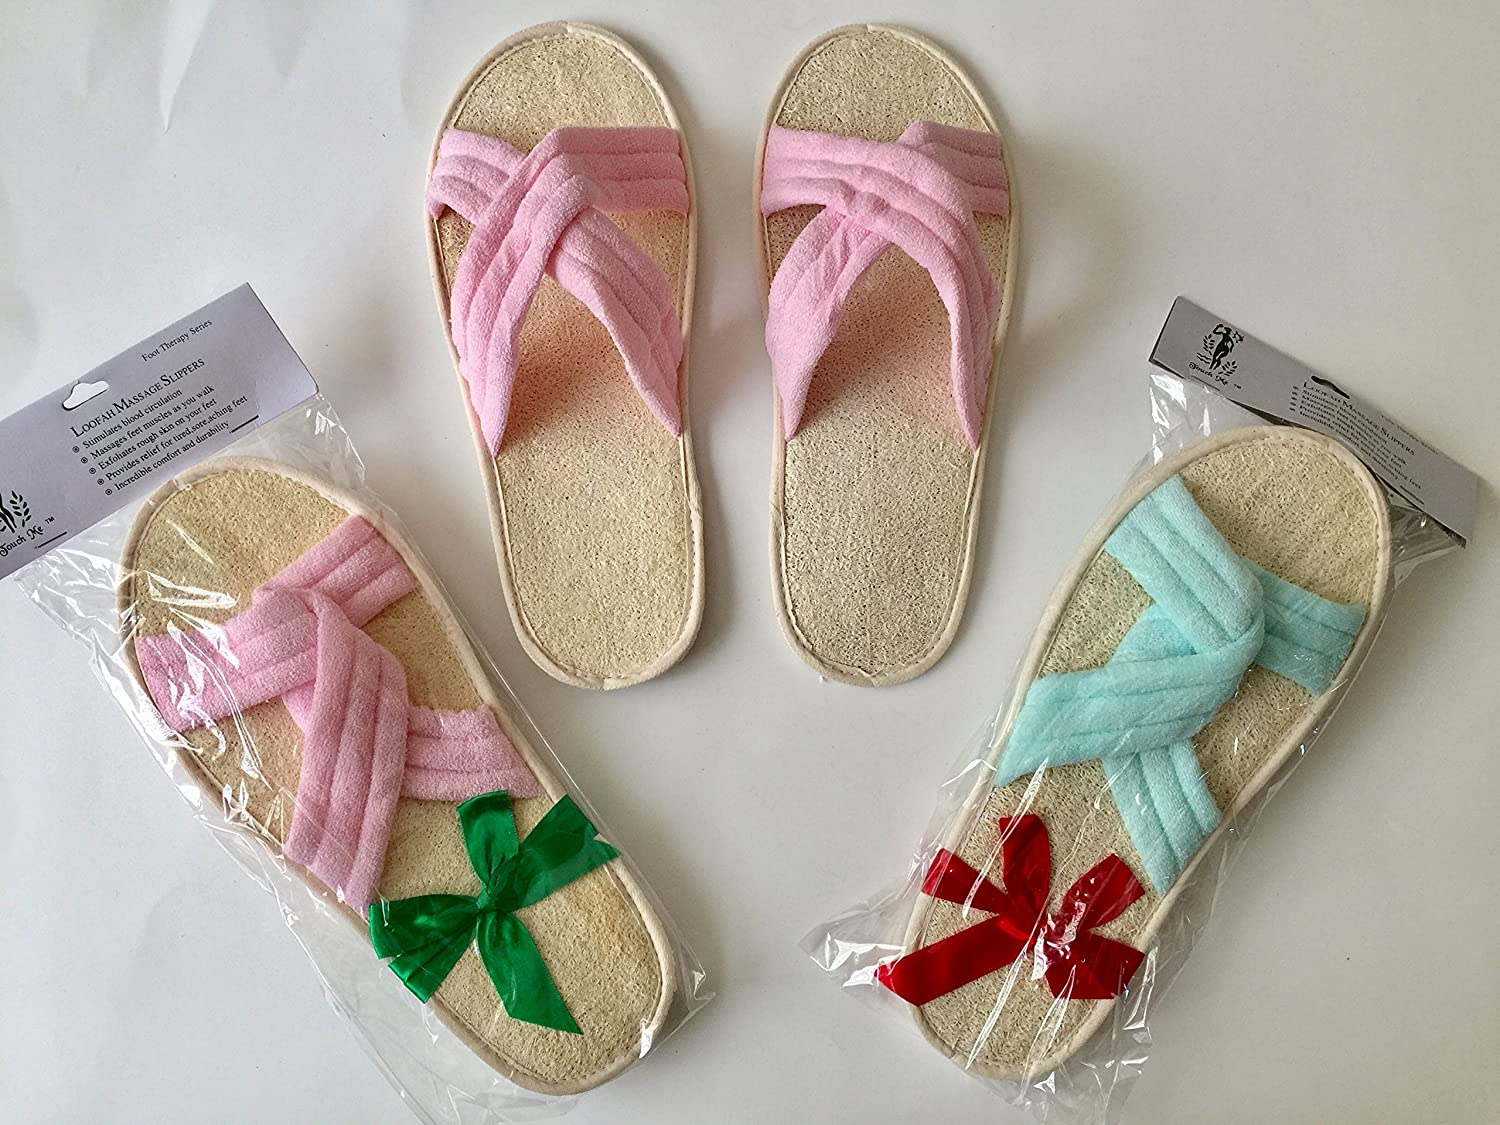 2 Pairs/Set Touch Me (TM) Natural Loofah Bath & Spa Massage Slippers - Criss Cross Slippers (Large (10-11))